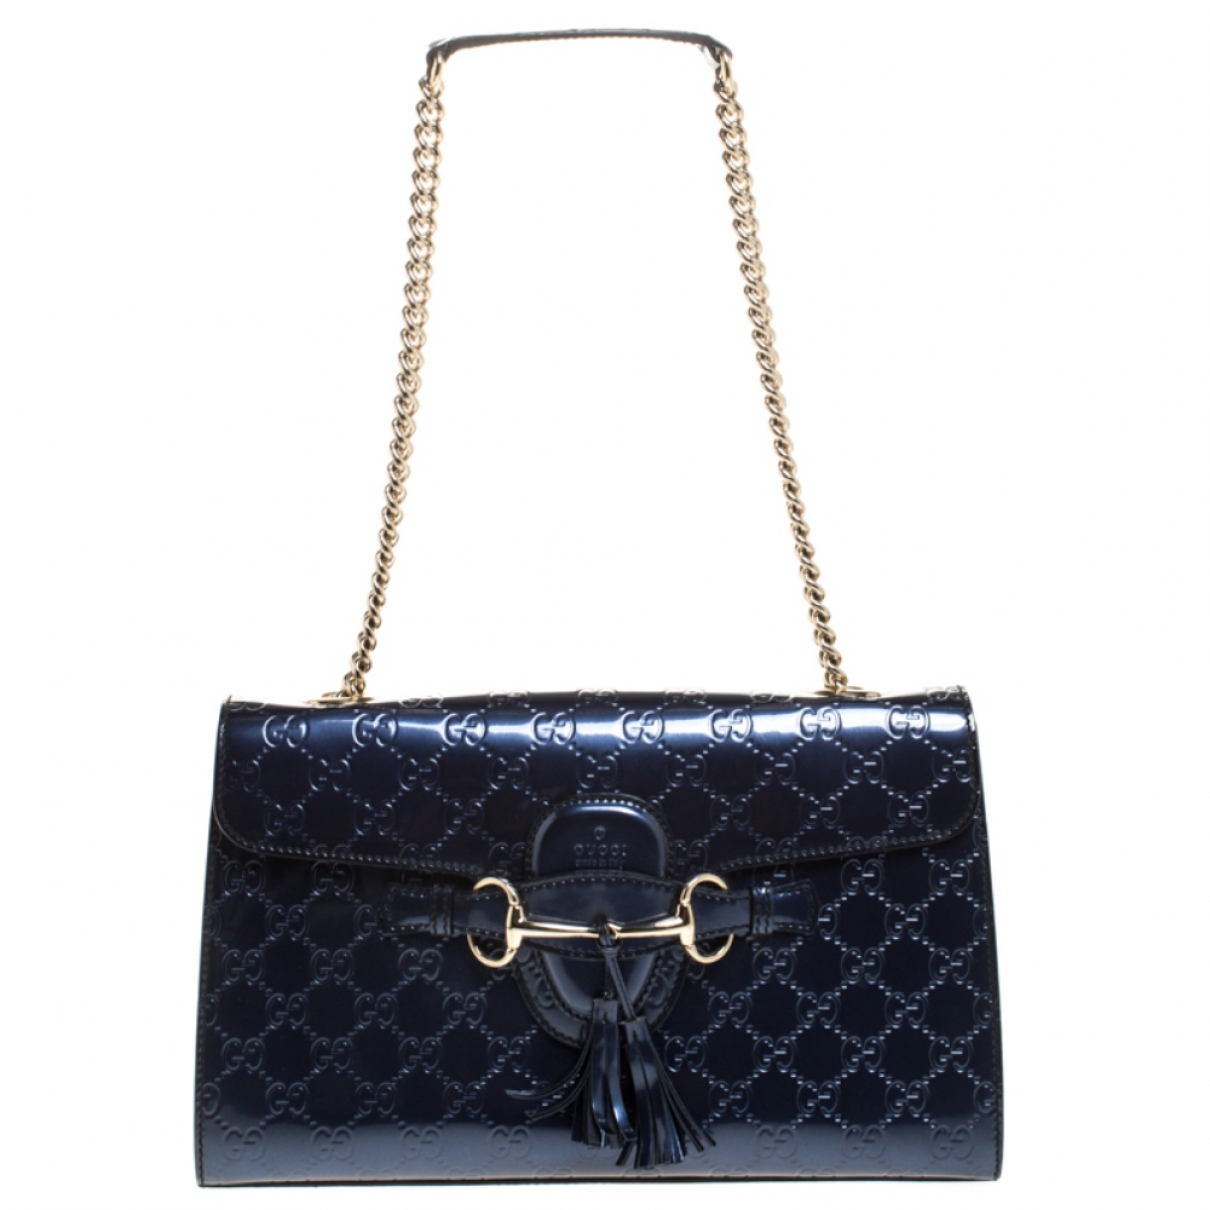 Gucci Emily Blue Patent leather handbag for Women N